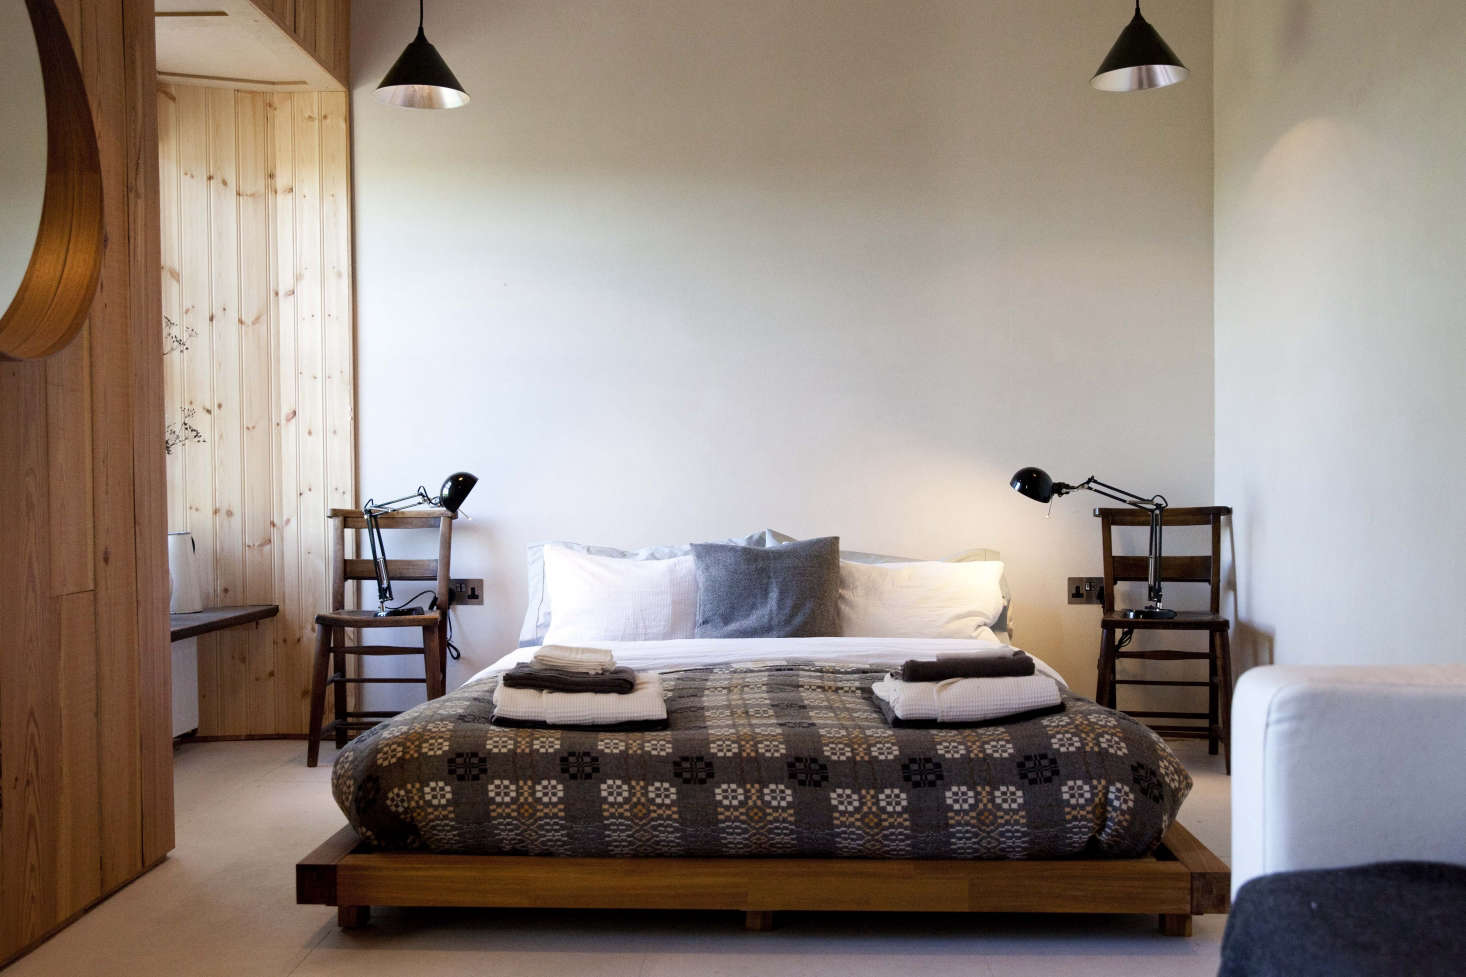 Old-school, patterned wool blankets are making a comeback, as in this bed in a Welsh country inn. See more in FForest: A Former Farm Transformed into the Ultimate Welsh Country Retreat, as well as Trend Alert: The Return of the Patterned Wool Blanket.